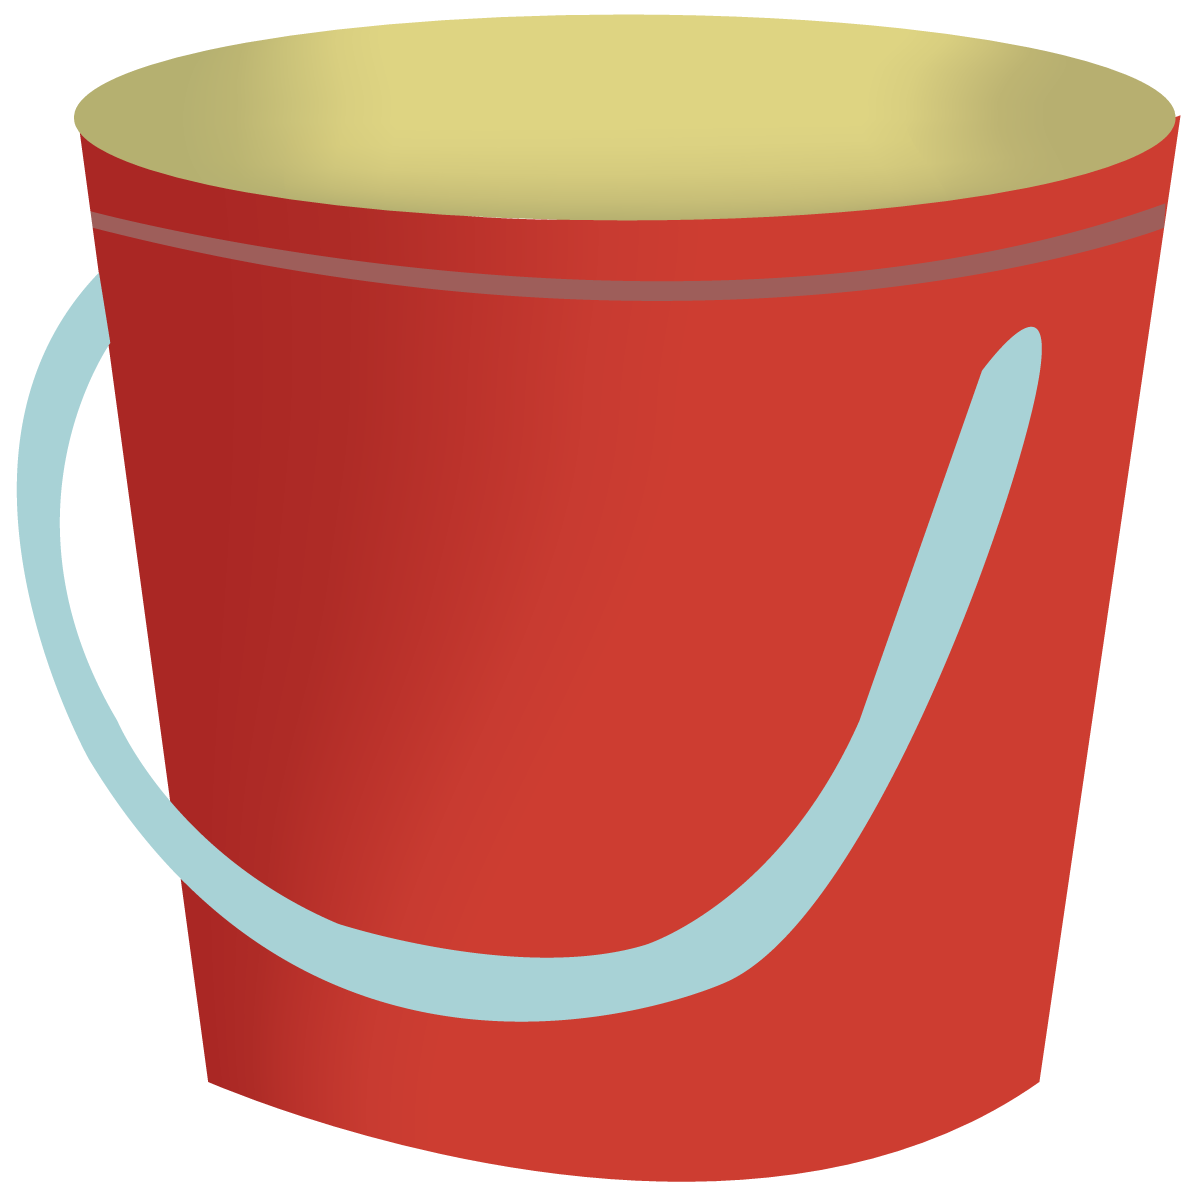 png freeuse download Bucket clip art clipart jpg